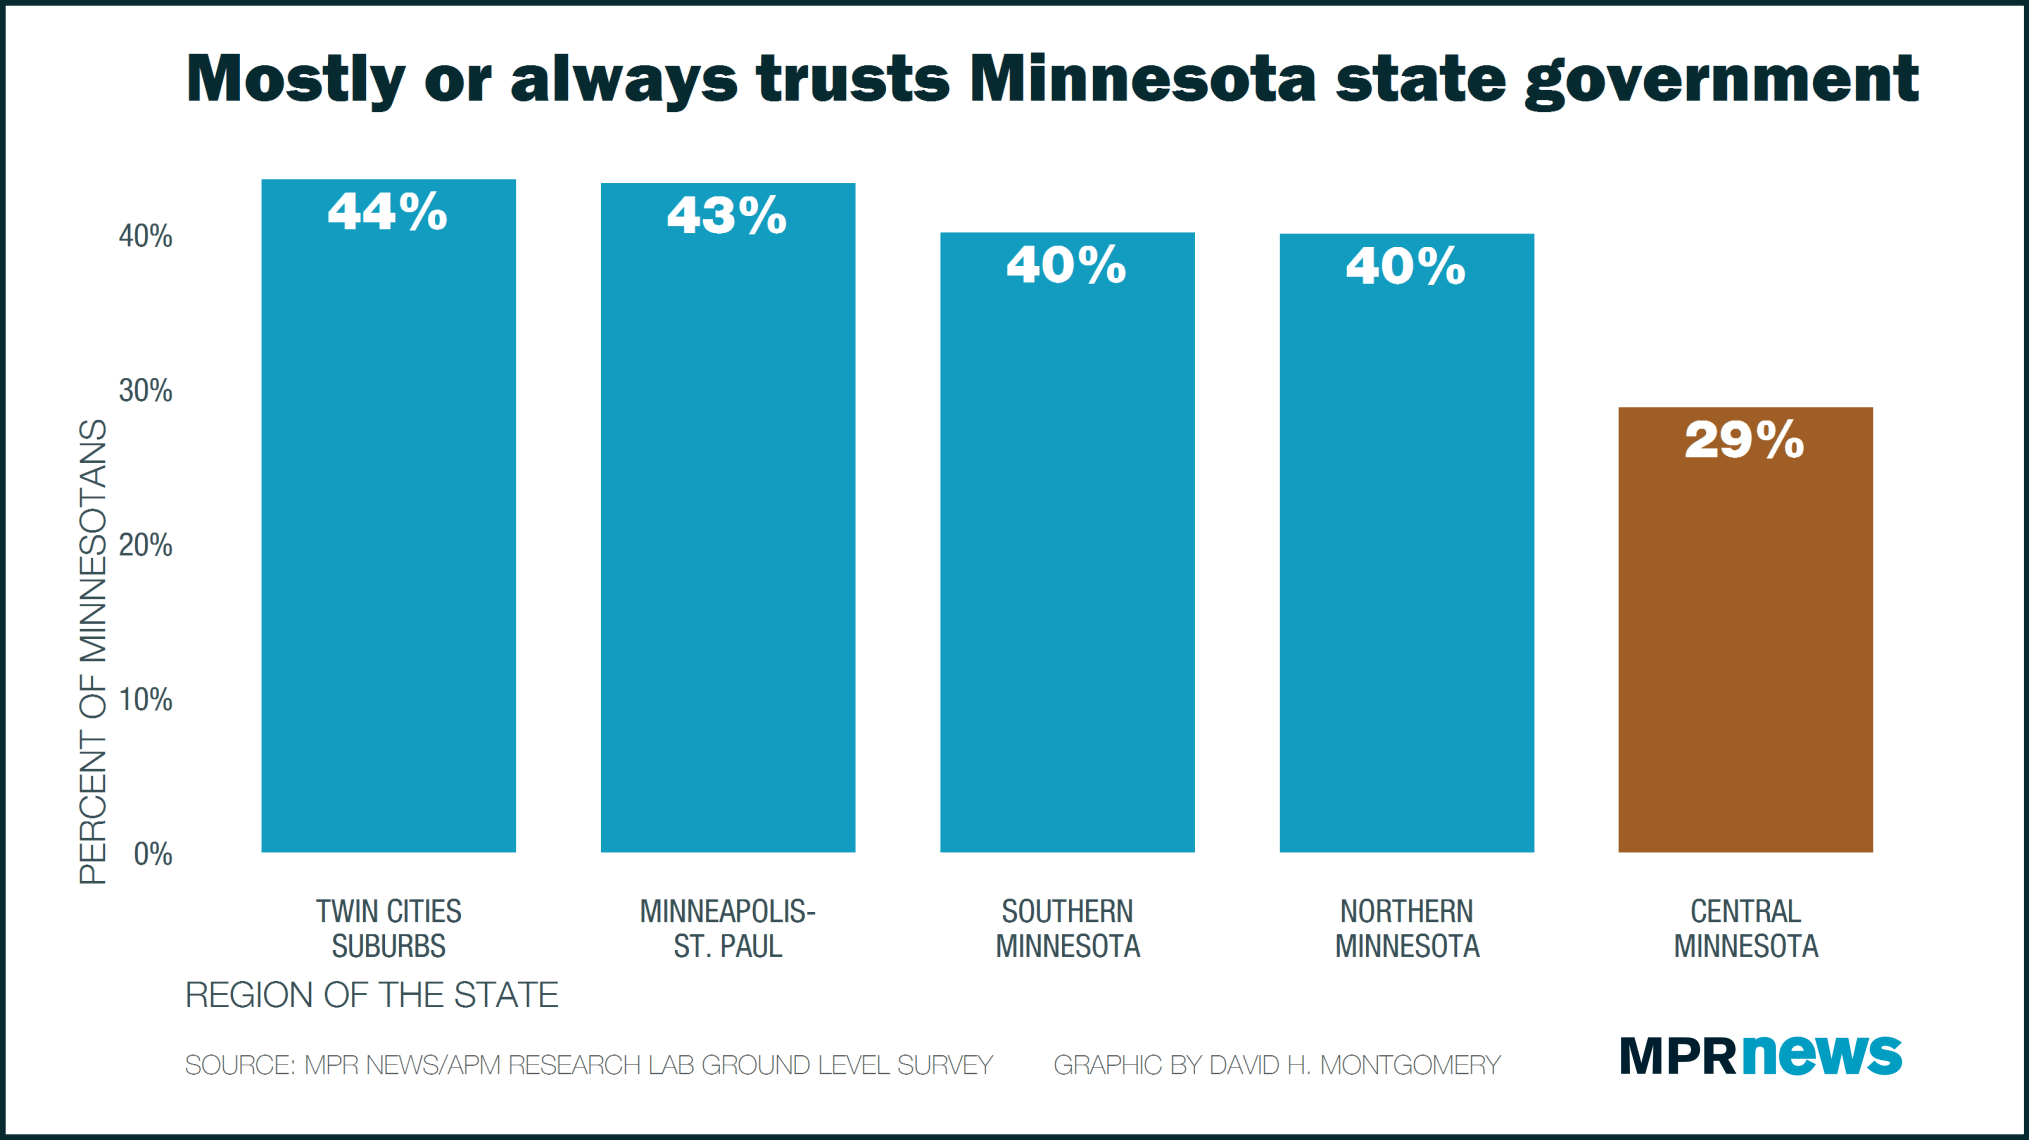 Central Minnesota has significantly lower trust in state government.